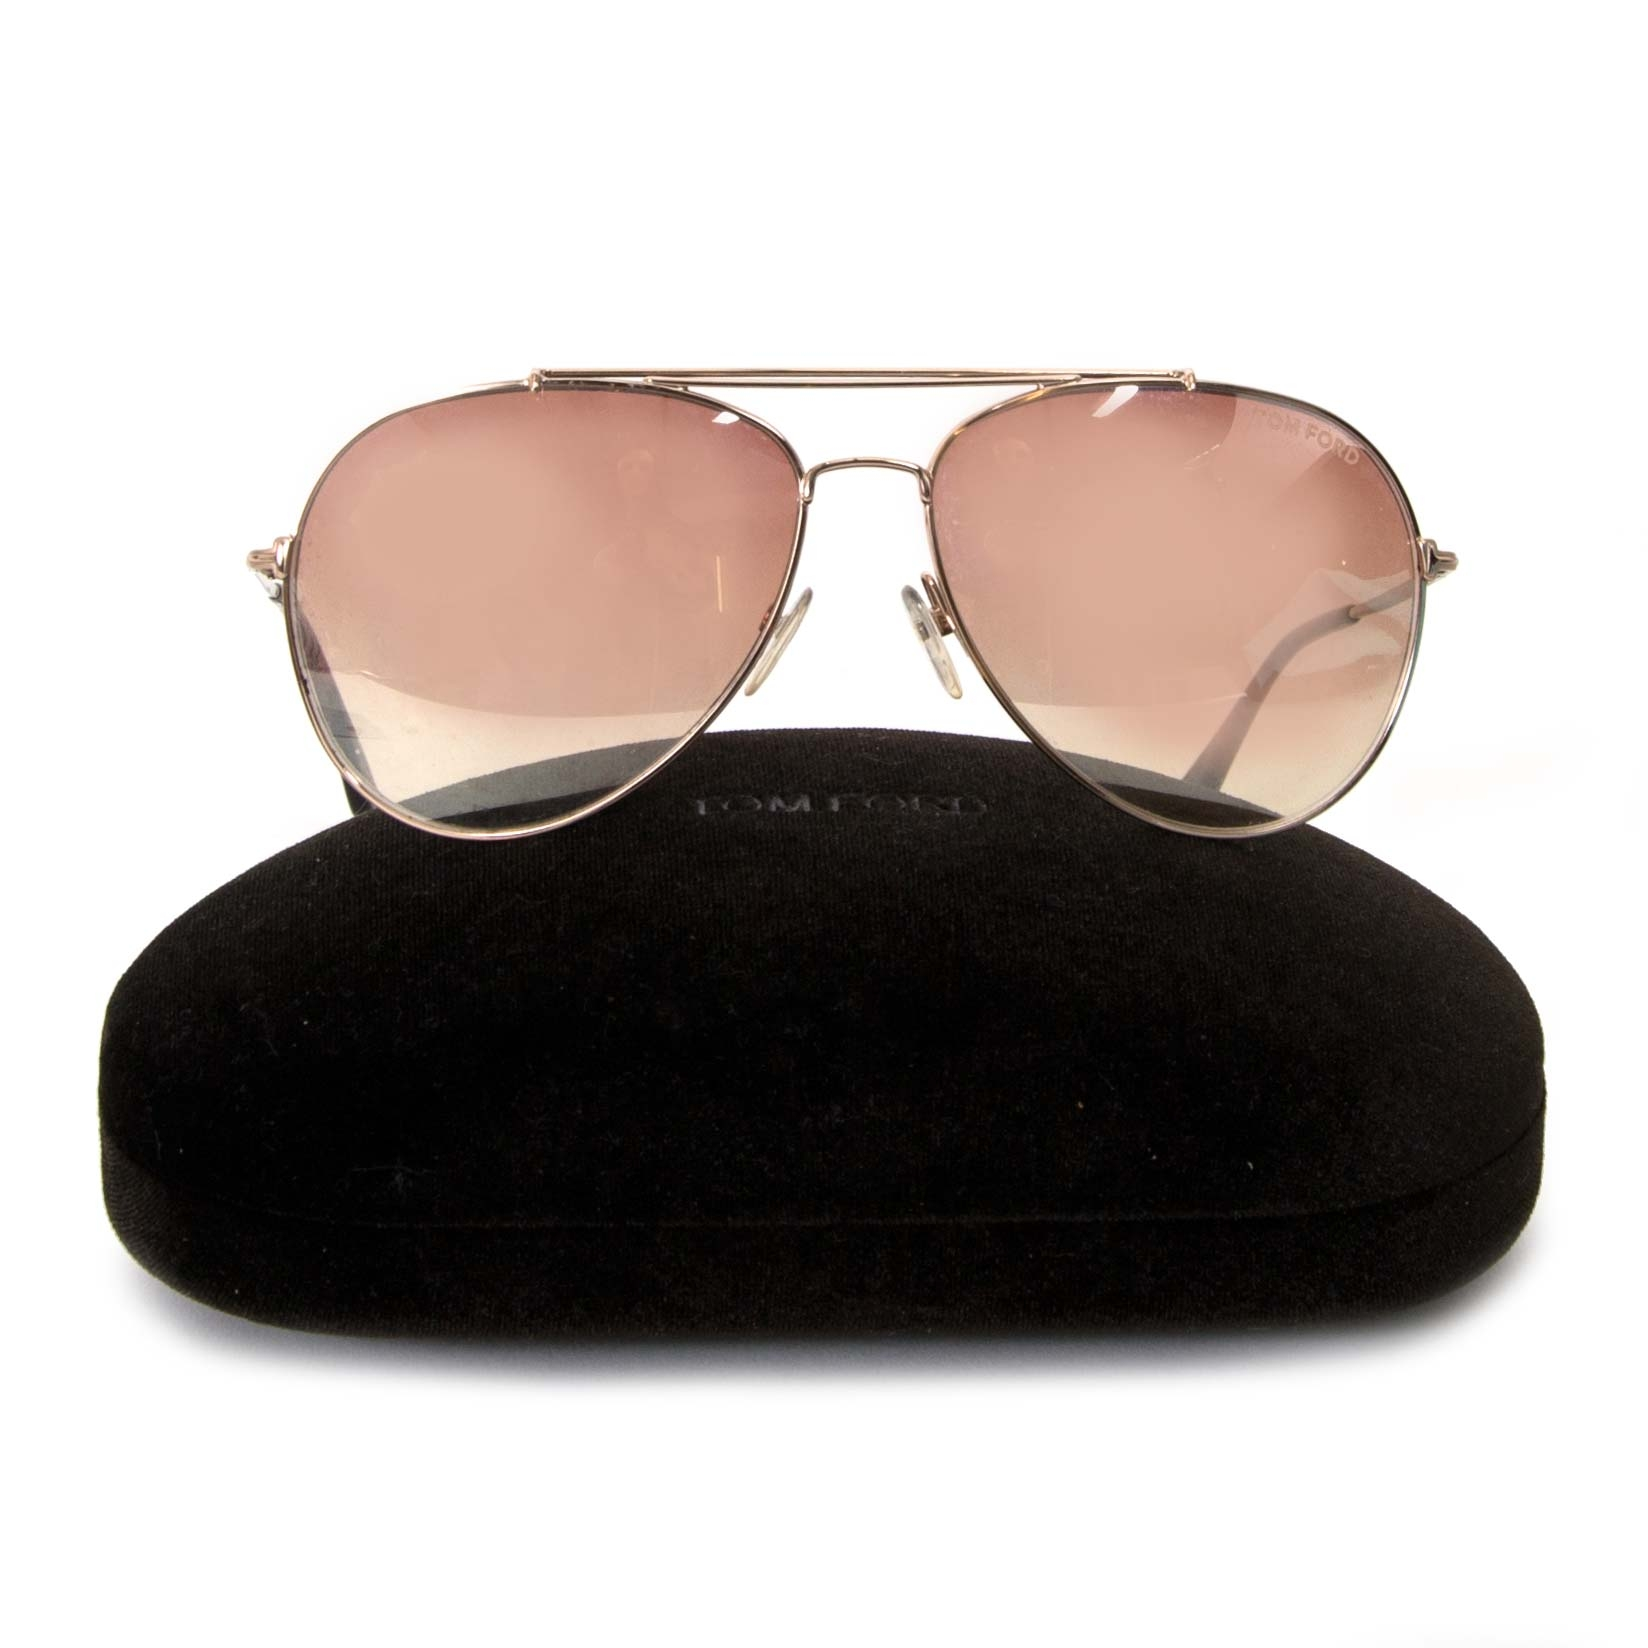 2f345d40f4 ... tom ford aviator sunglasses now for sale at labellov vintage fashion  webshop belgium